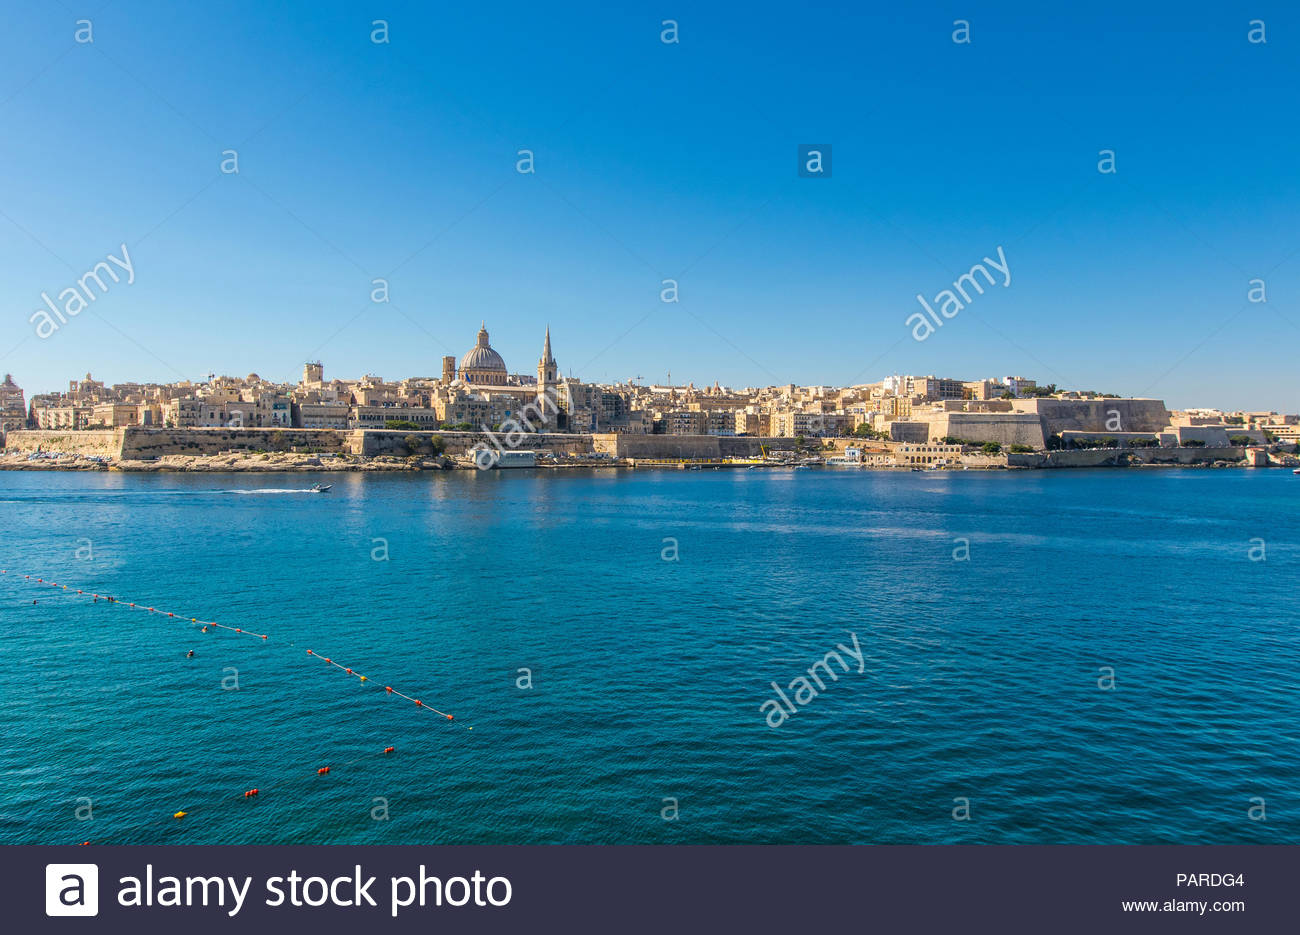 looking from sliema over marsamxett harbour to valletta with the st. paul's pro-cathedral and basilica of our lady of mount carmel, malta Stock Photo